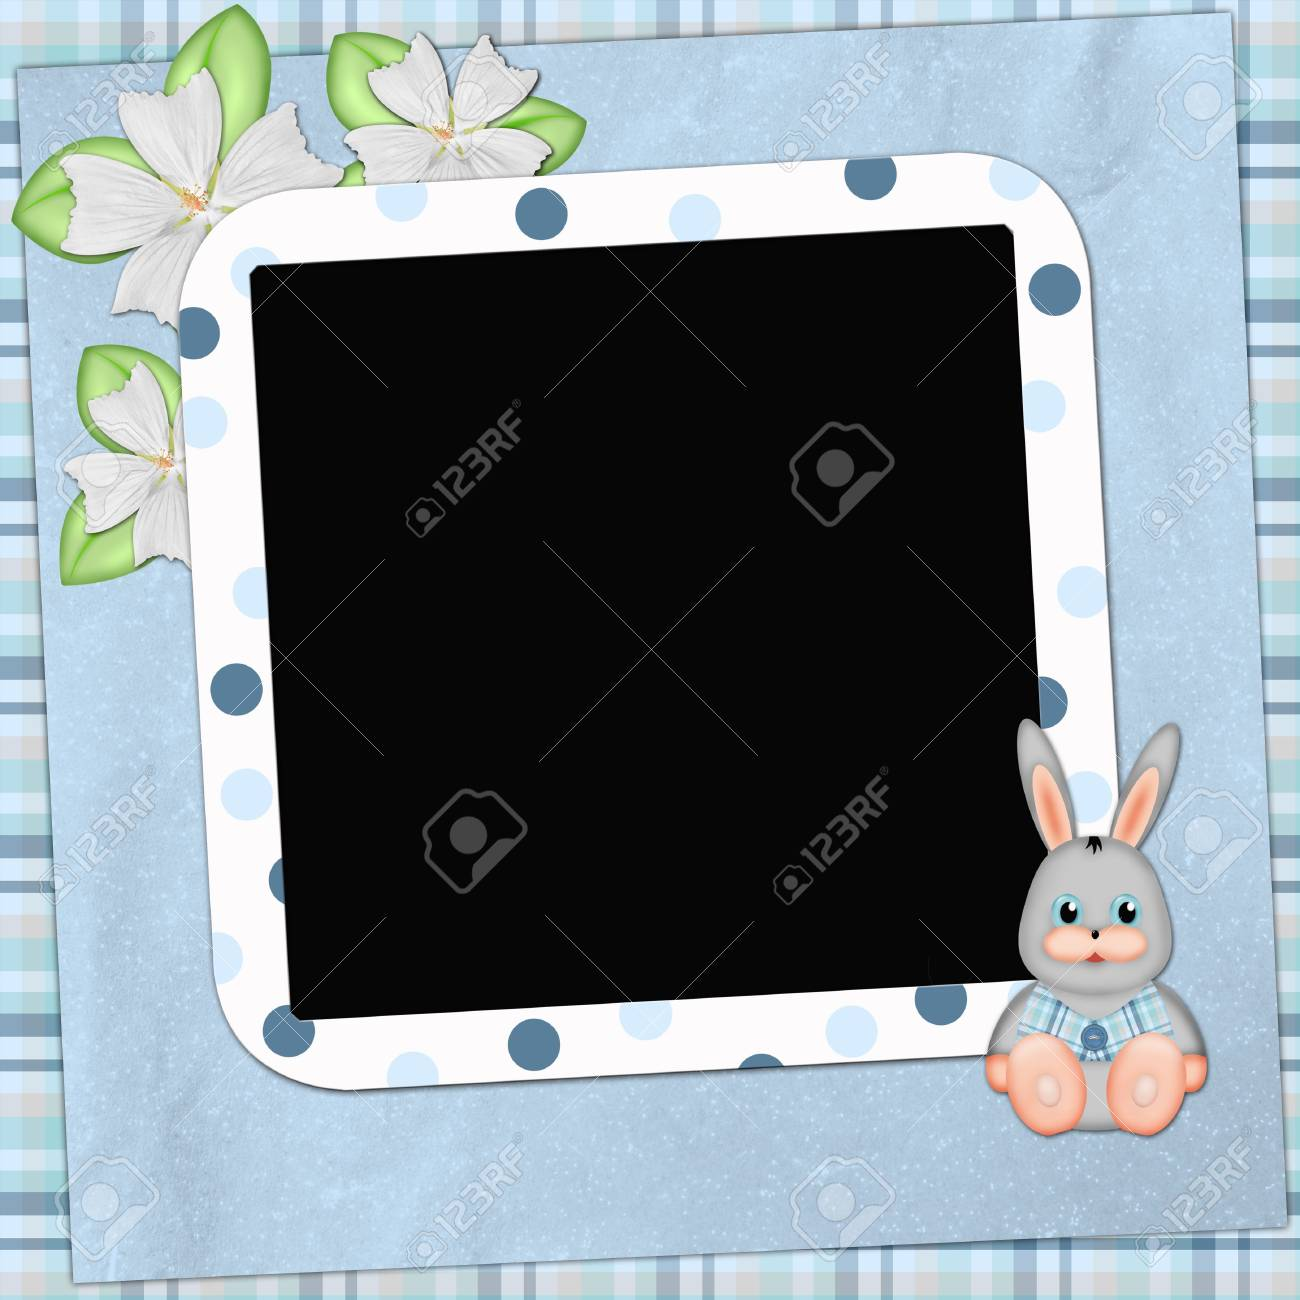 Framework for photo or congratulation with bunny Stock Photo - 6423431